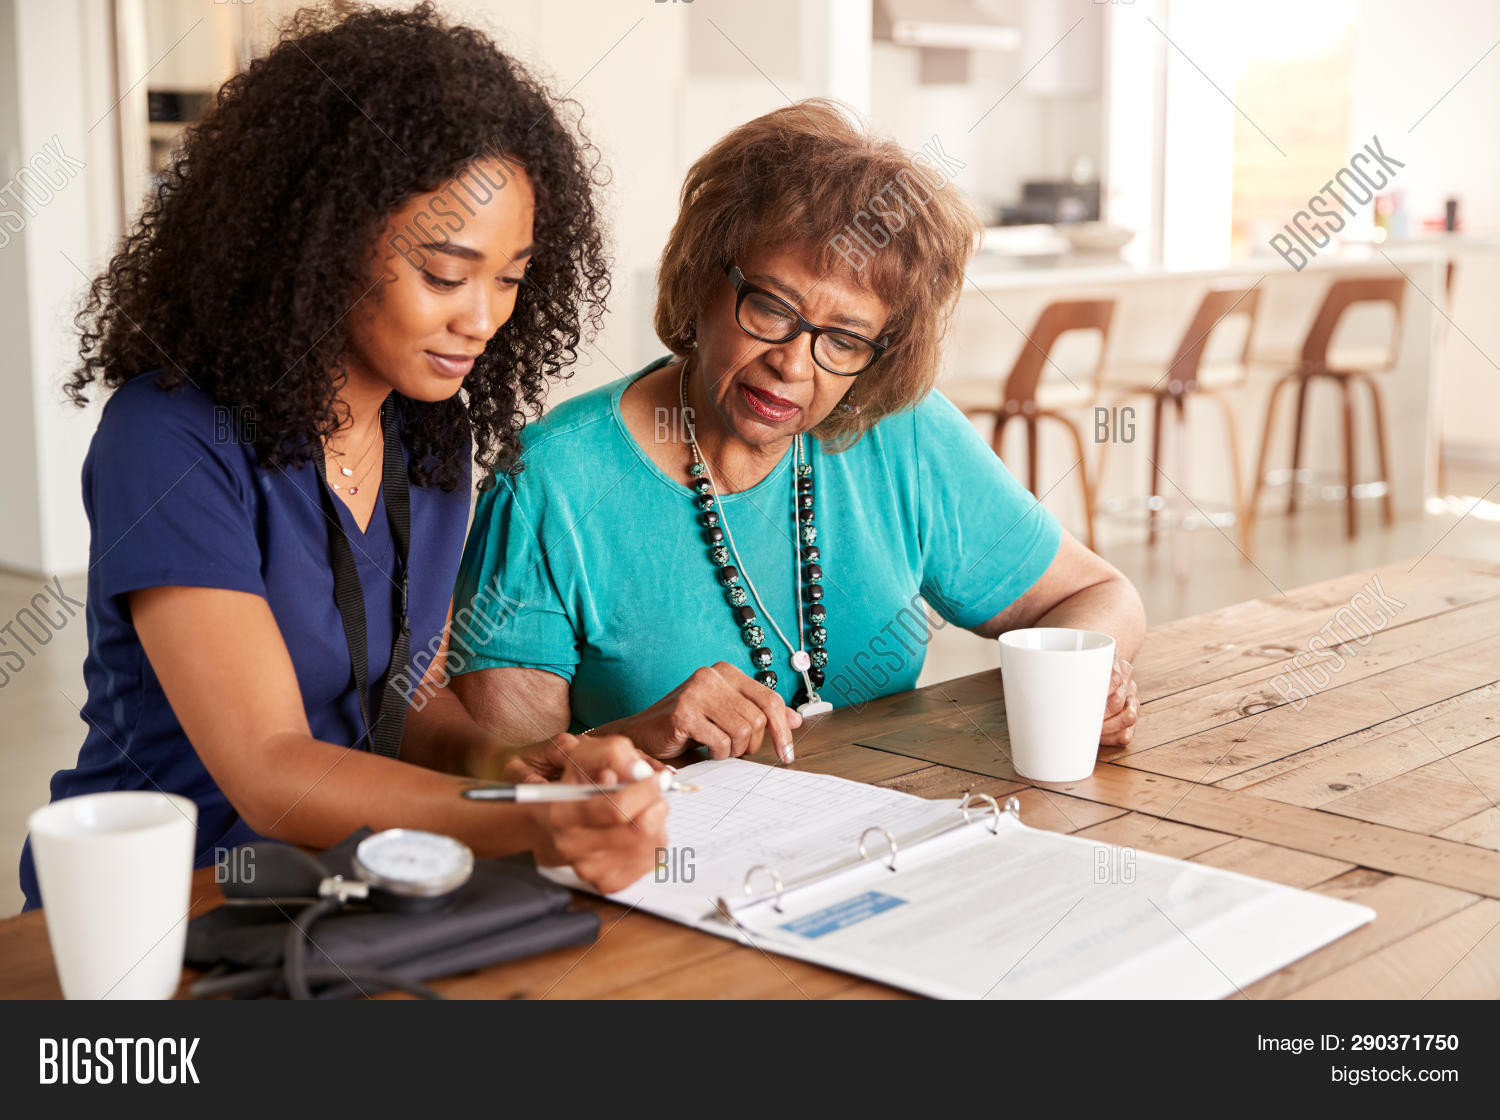 20s,80s,adults,african american ethnicity,age,black,care,casual clothing,close up,concentrating,convenience,copy space,cups,curly hair,day,dining room,diversity,doctor,domestic life,filling in form,health care,health check,home,home visit,horizontal,indoors,making notes,medical check up,medical records,millennial,mixed race person,nurse,retirement,senior,serious,sitting at table,sunlight,tea cups,two people,waist up,wearing glasses,women,young adult